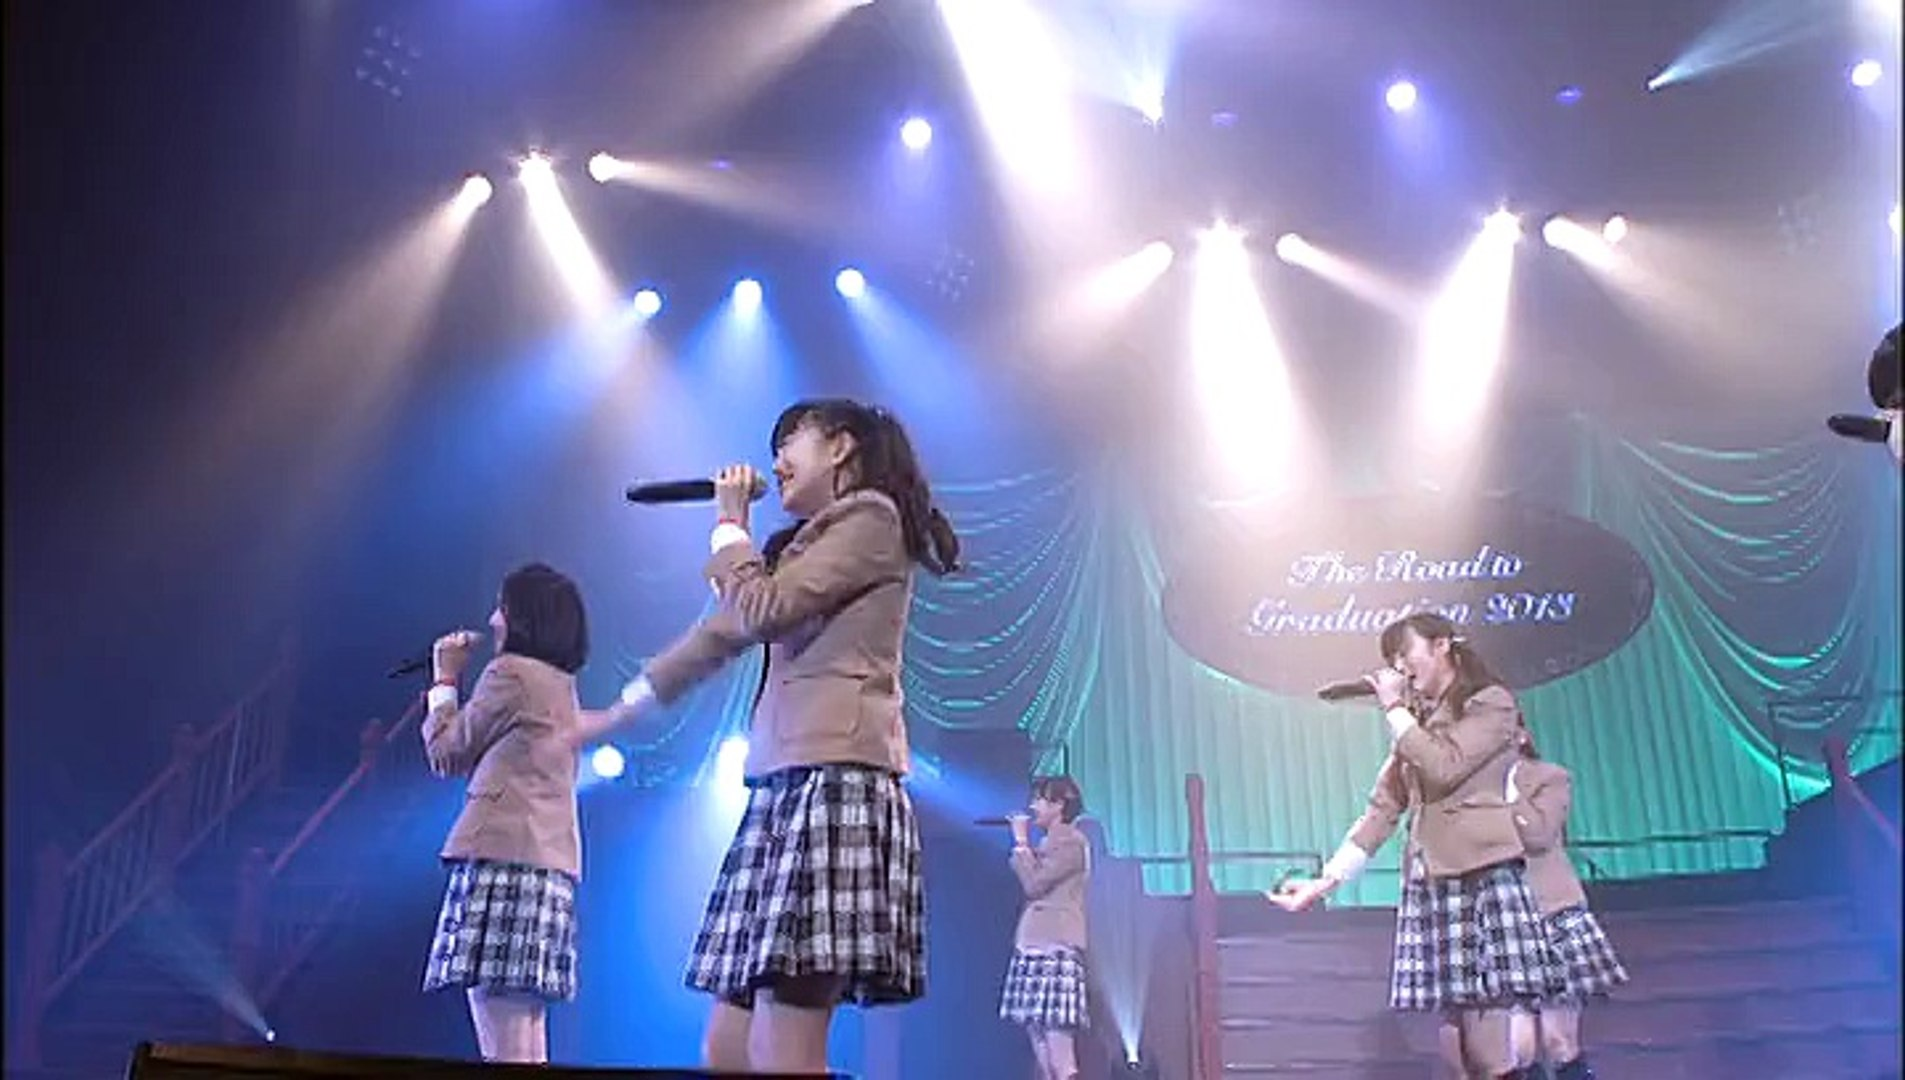 Sakura Gakuin さくら学院 - The Road to Graduation FINAL 2013 ~2013 Nendo Sotsugyo~ [Part 2 of 3]